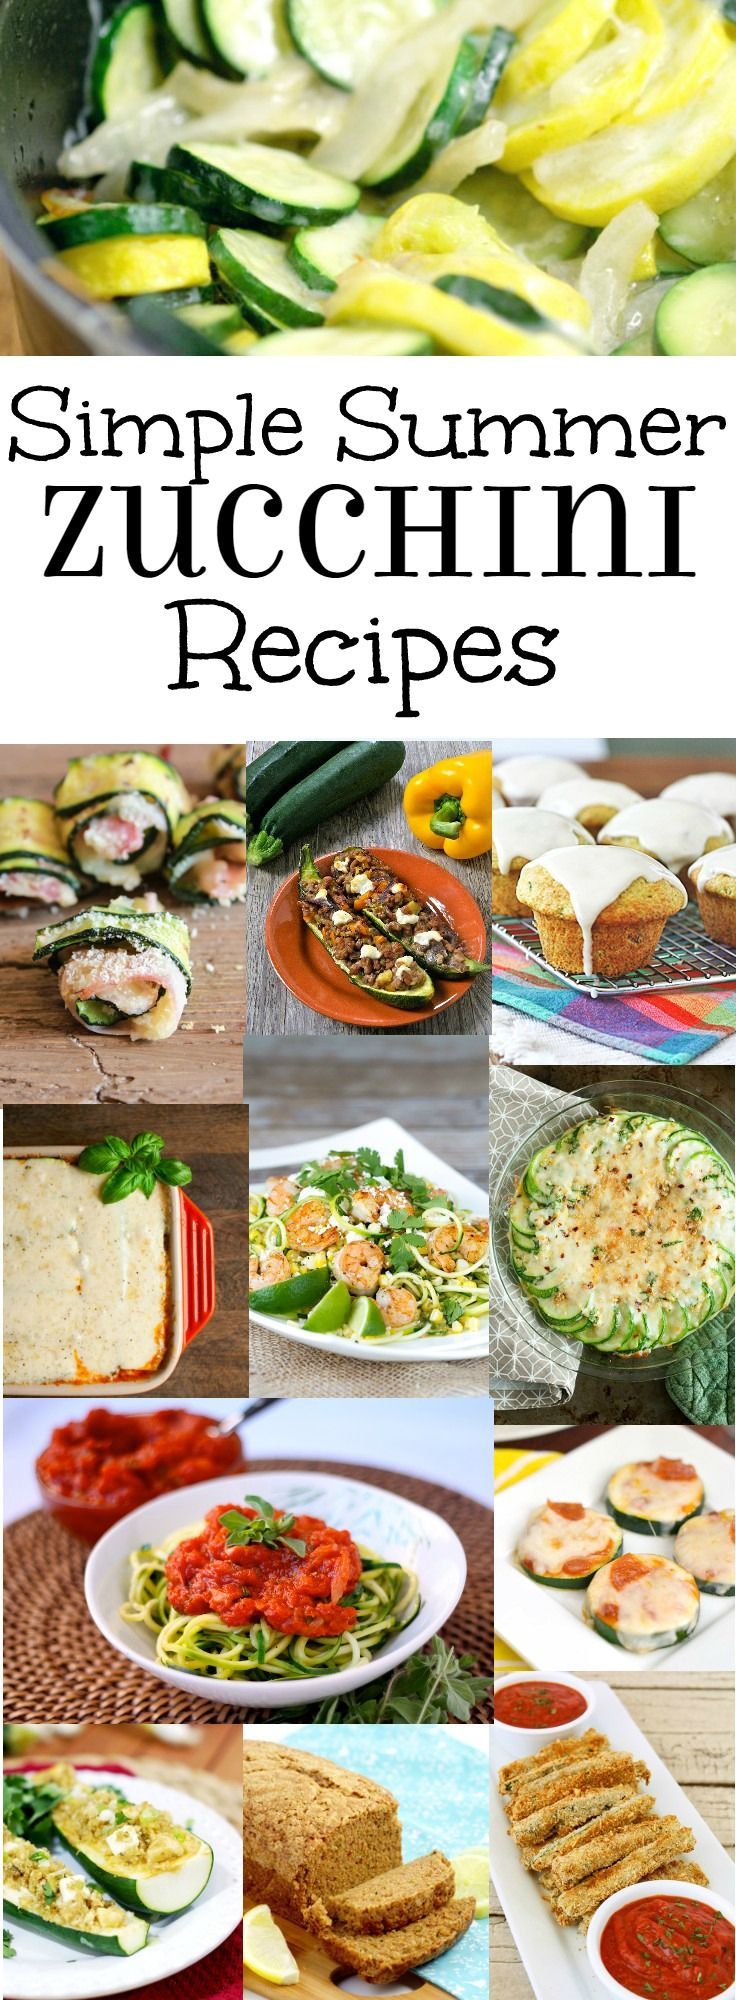 ... Zucchini Recipes on Pinterest | Zucchini, Zucchini Casserole and